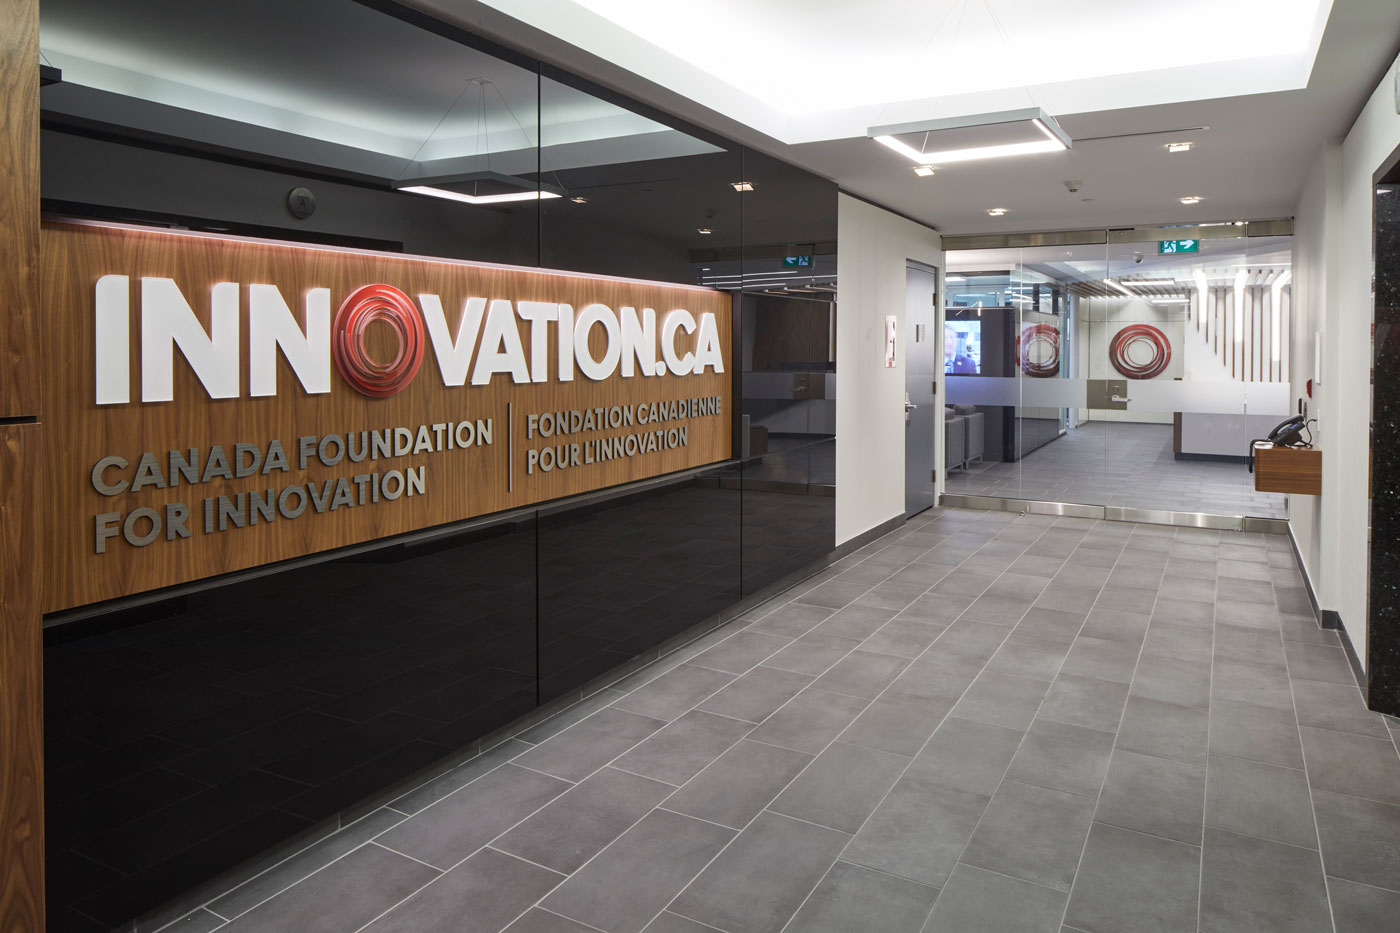 An immaculate office space lets this foundation focus on innovation